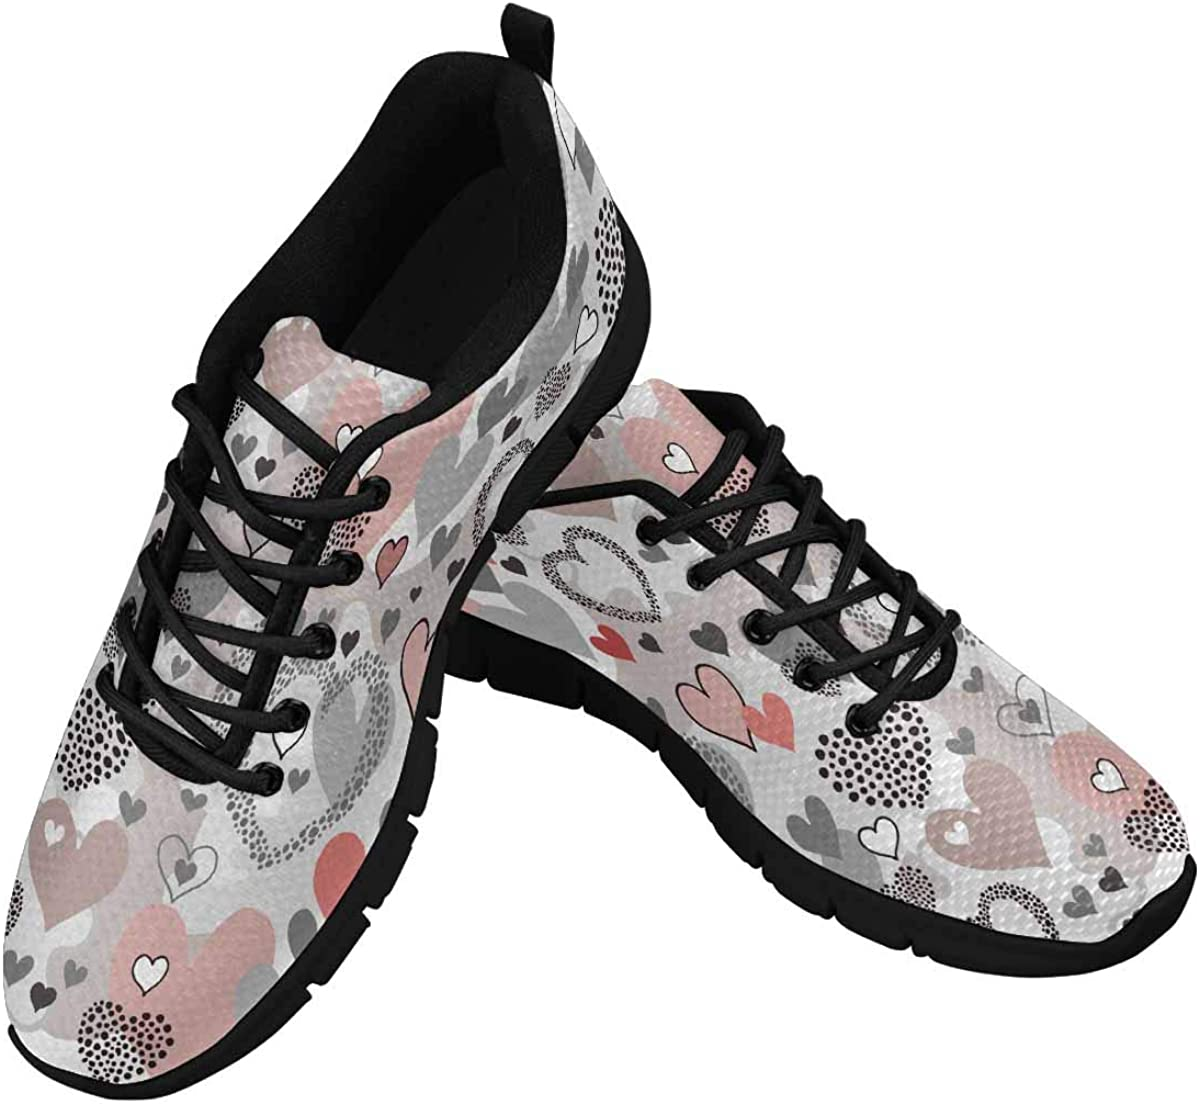 InterestPrint Pattern with Hearts Women's Athletic Mesh Breathable Casual Sneakers Fashion Tennis Shoes